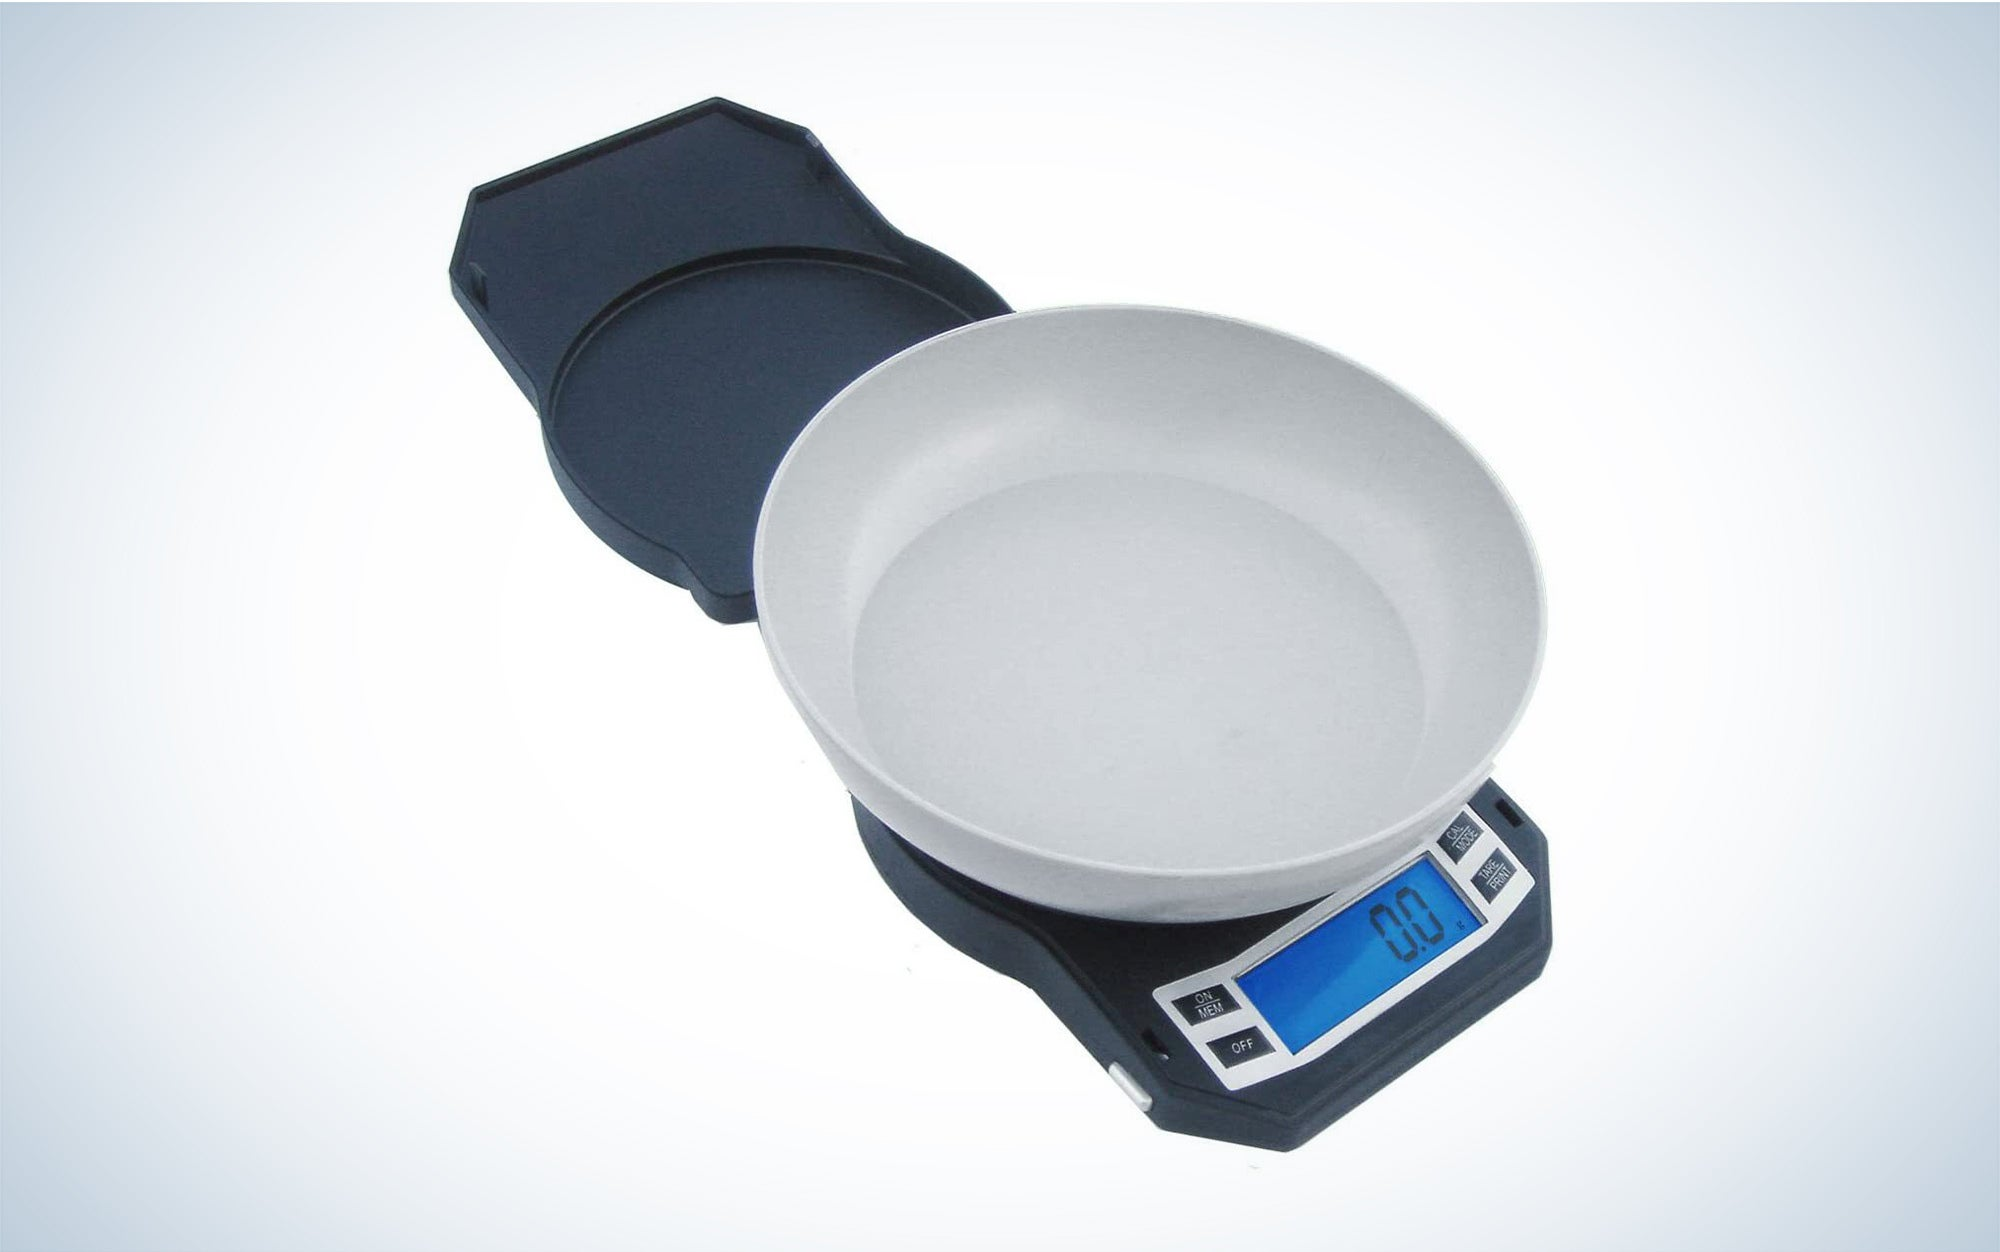 an LB-3000 kitchen scale from American Weigh Scales